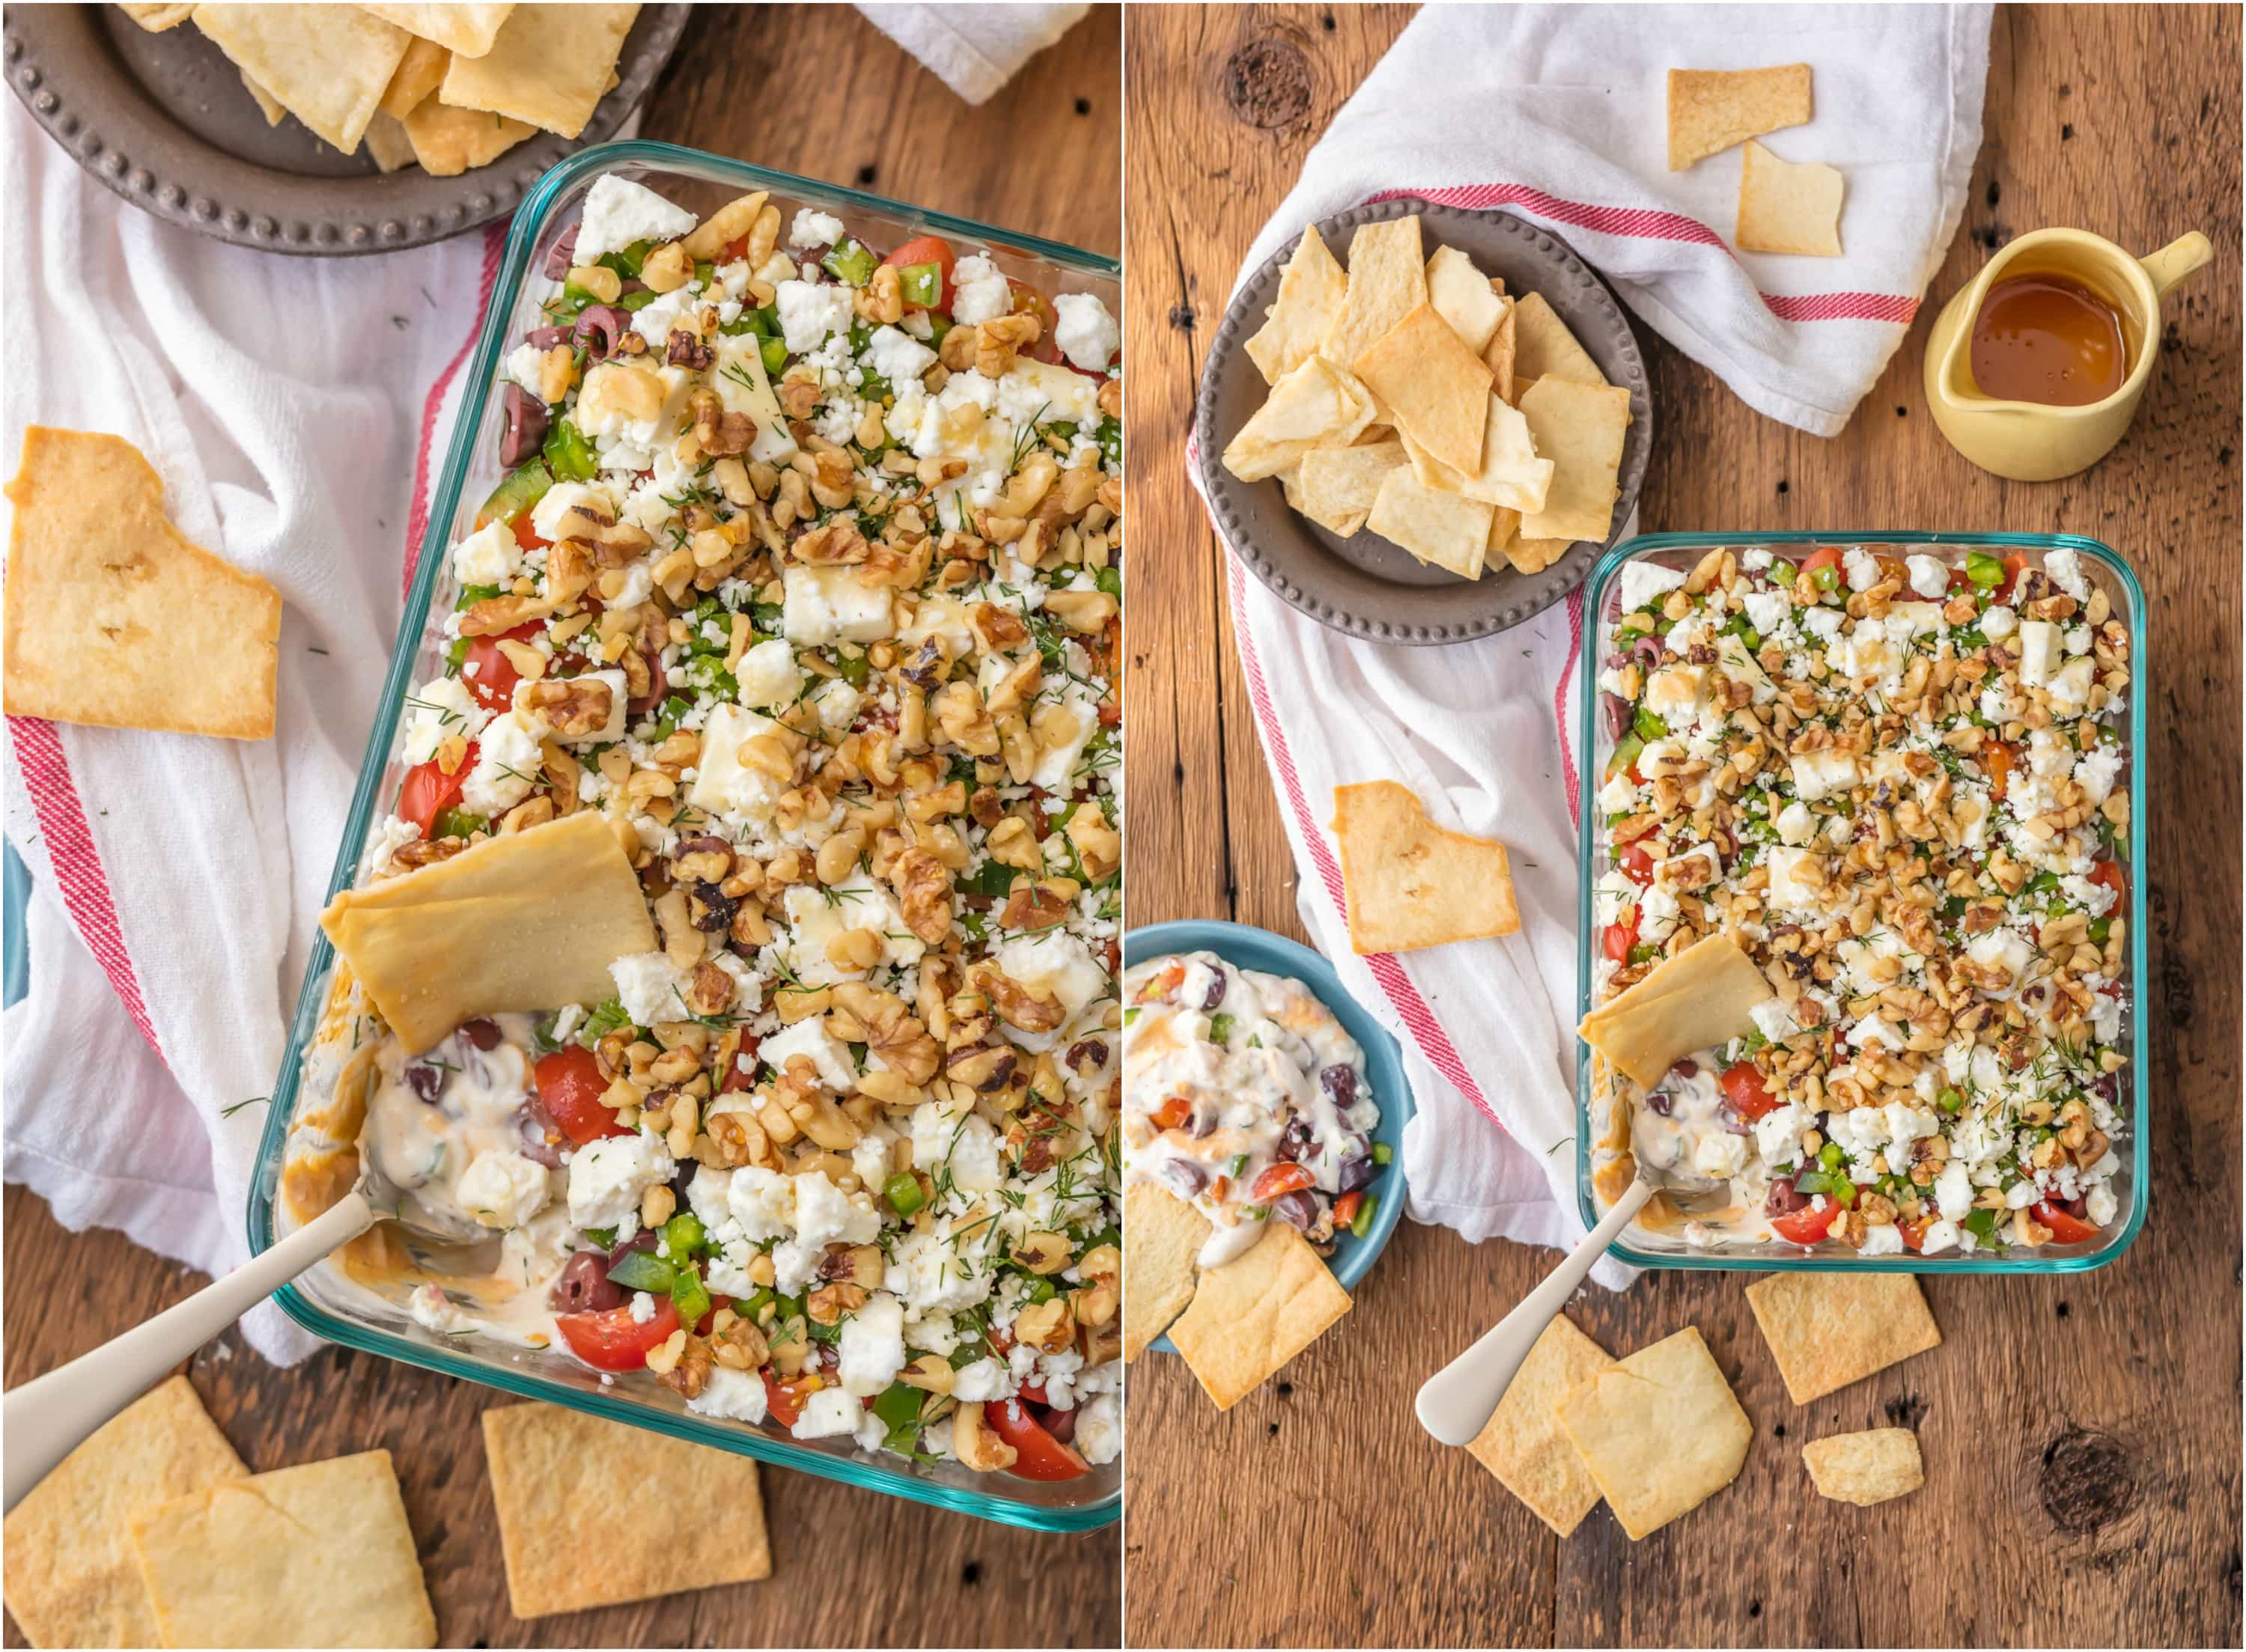 GREEK 7 LAYER DIP is a fun twist on a classic appetizer. This delicious dip is the perfect sharable app for Christmas, NYE, or any reason for tailgating. Layers of hummus, greek yogurt, feta, and so much more make it SO addicting!